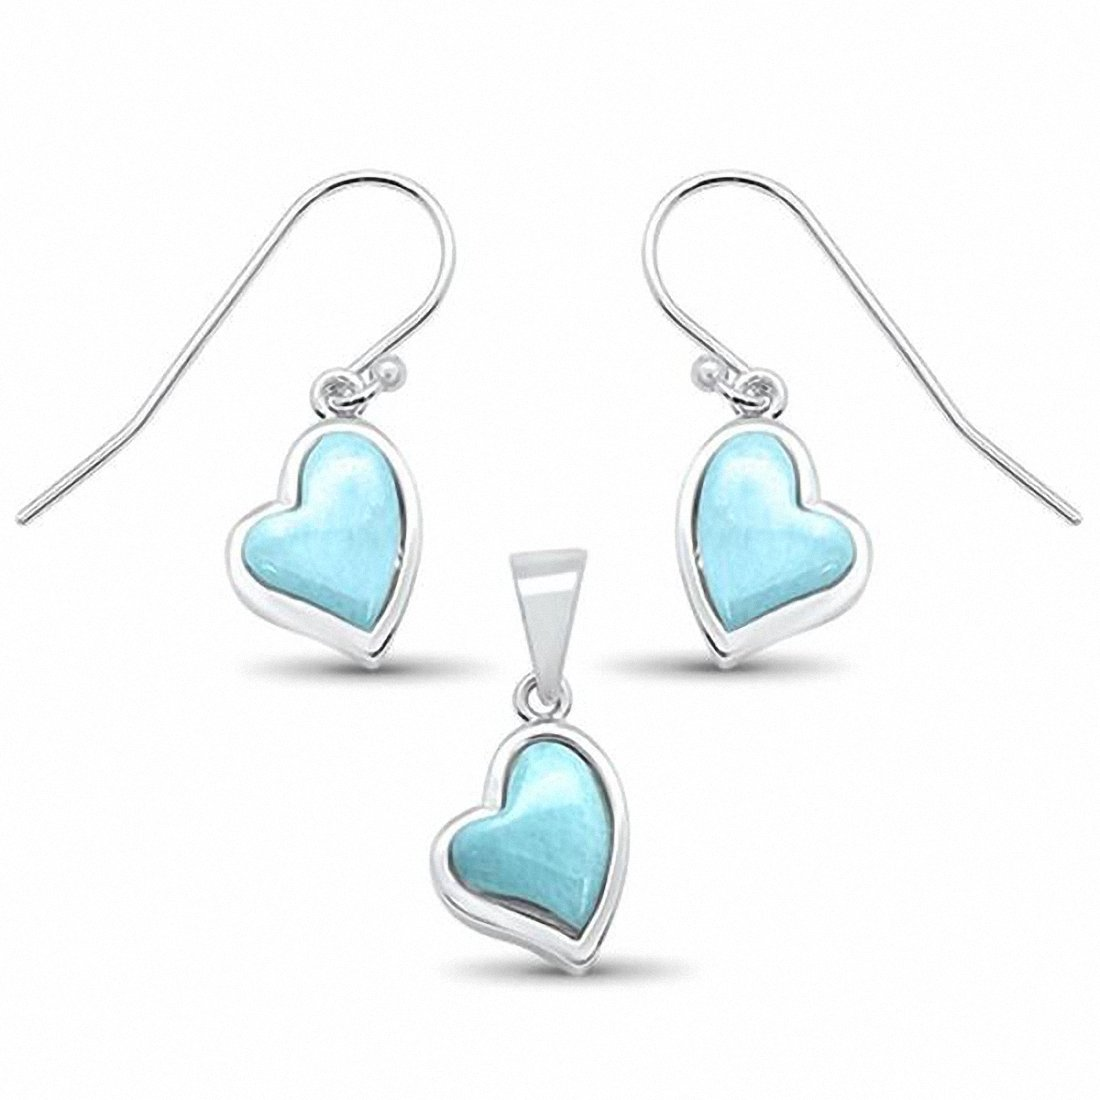 Heart Jewelry Set Pendant Created Opal Fishhook Earring 925 Sterling Silver Choose Color